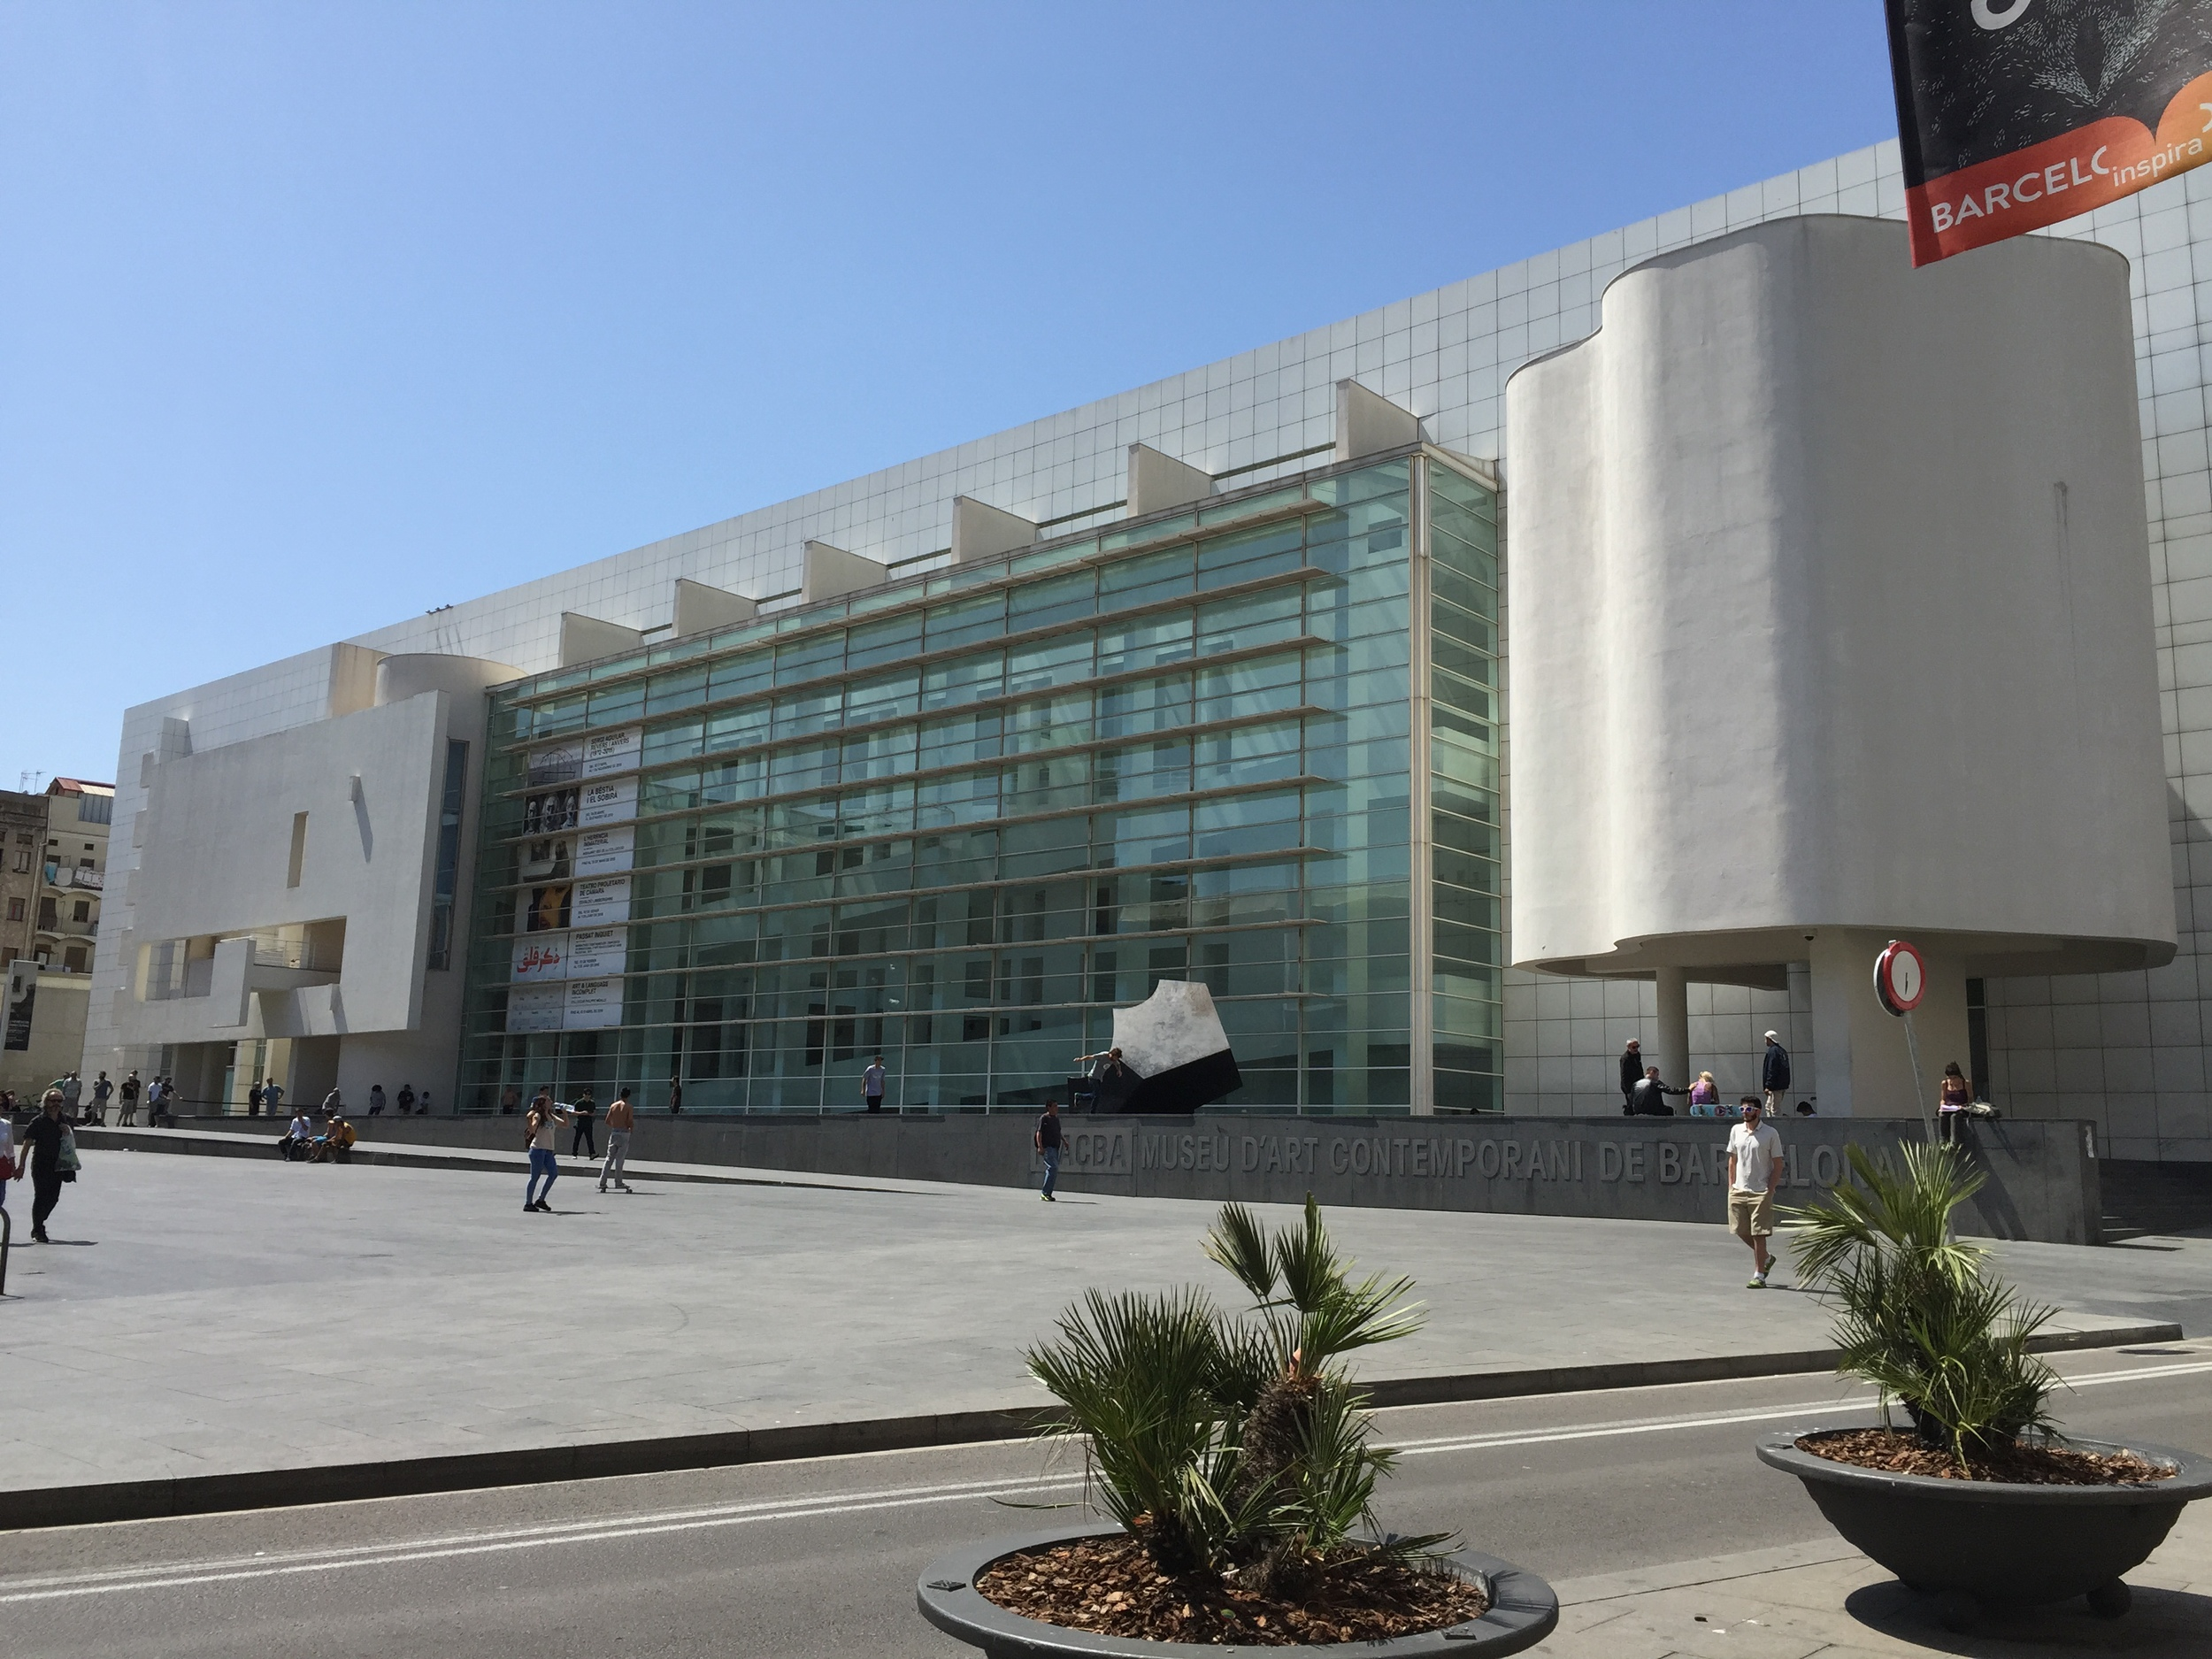 MACBA and the always present skaters.